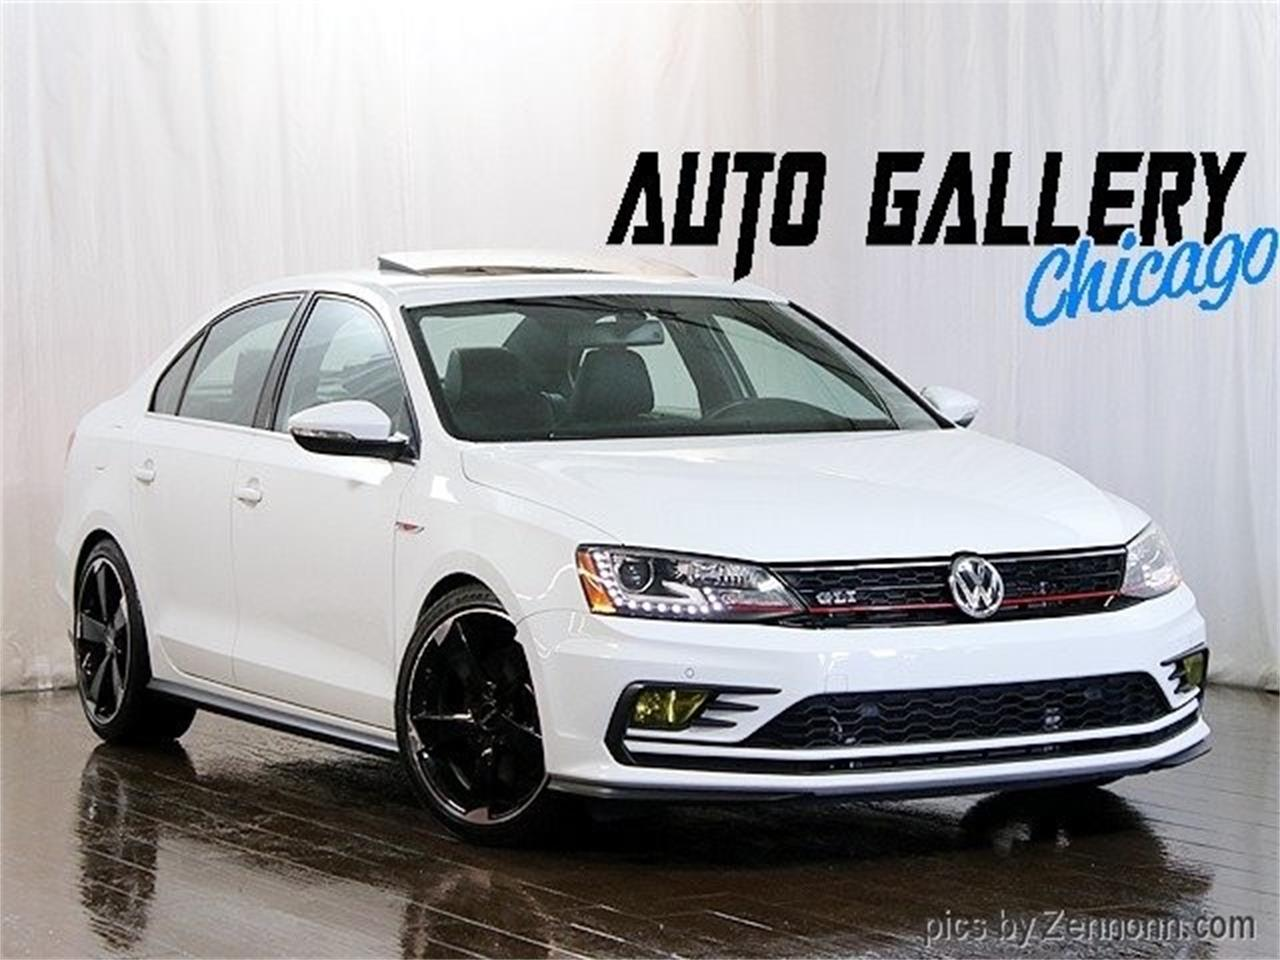 Large Picture of '16 Volkswagen Jetta located in Illinois Offered by Auto Gallery Chicago - PNNN